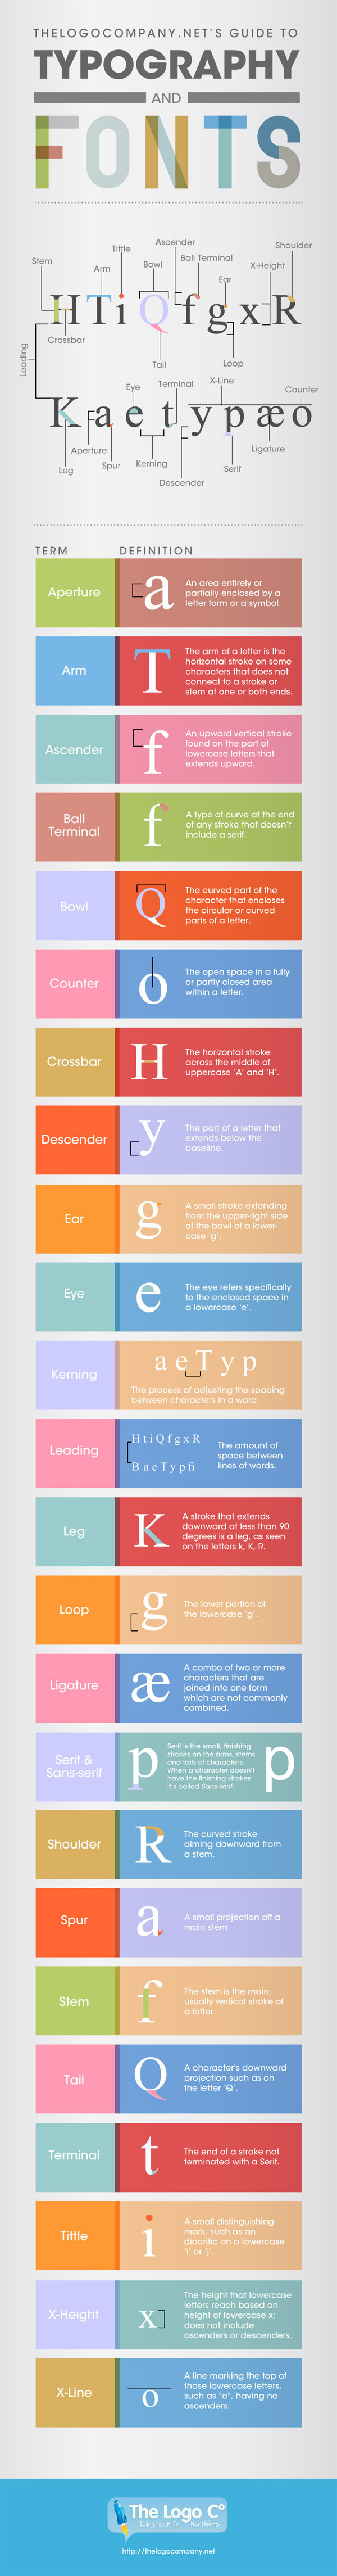 The Ultimate Guide to Typography and Font [Infographic] #font #infographic #design #typography